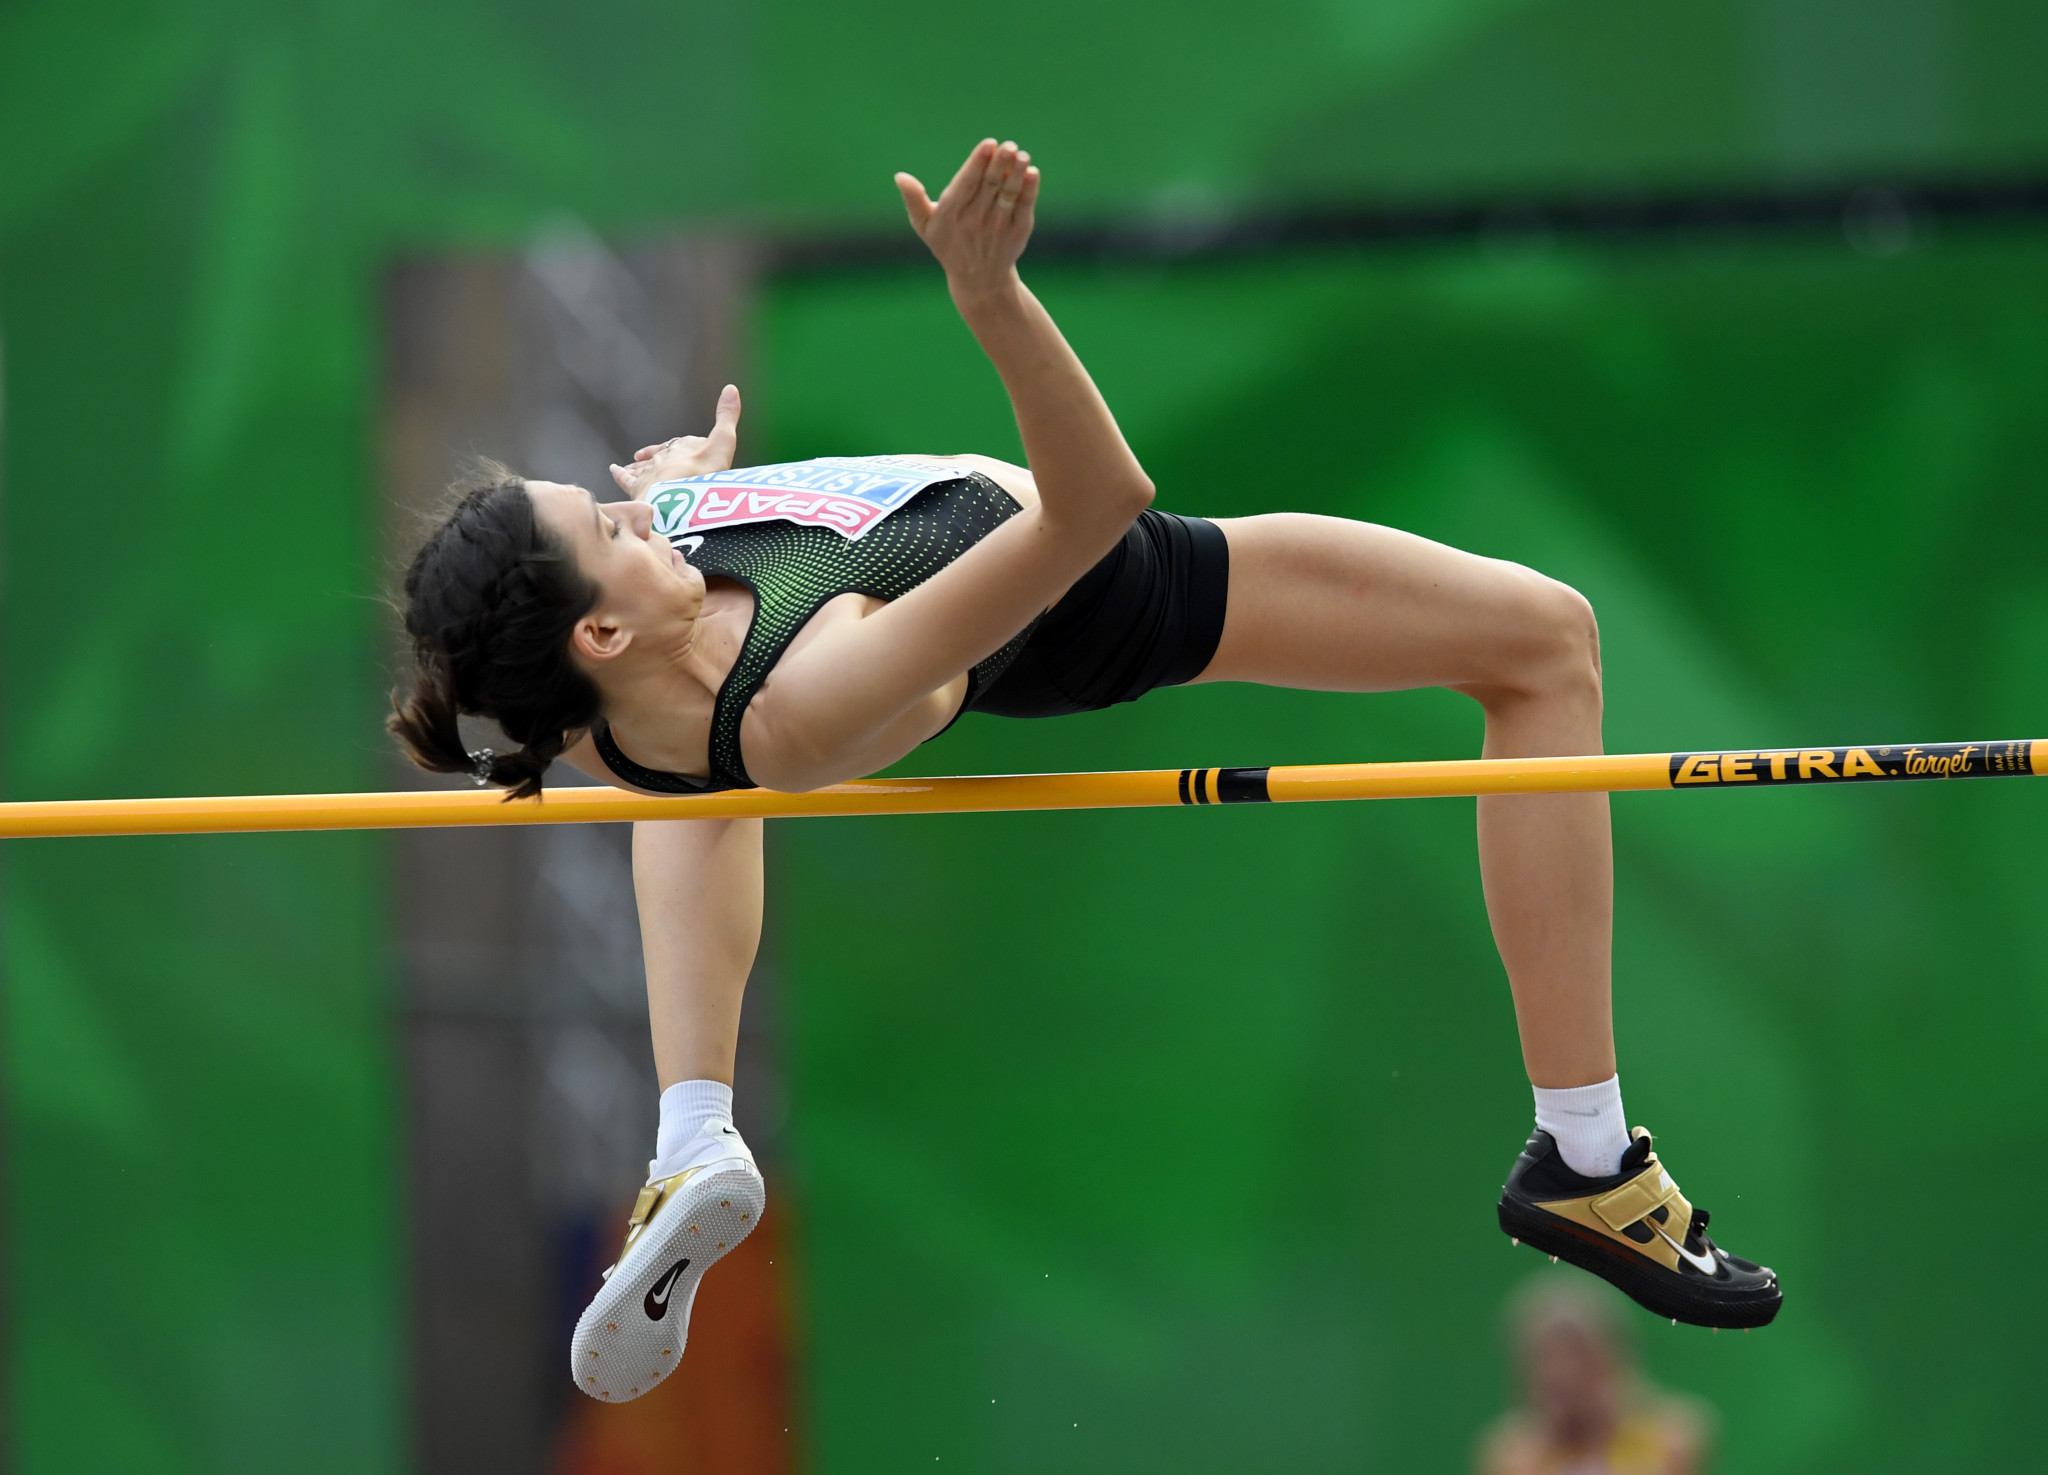 Russians, like high jumper Mariya Lasitskene, have been allowed by the IAAF to compete as Authorised Neutral Athletes while their national governing body is suspended ©Getty Images